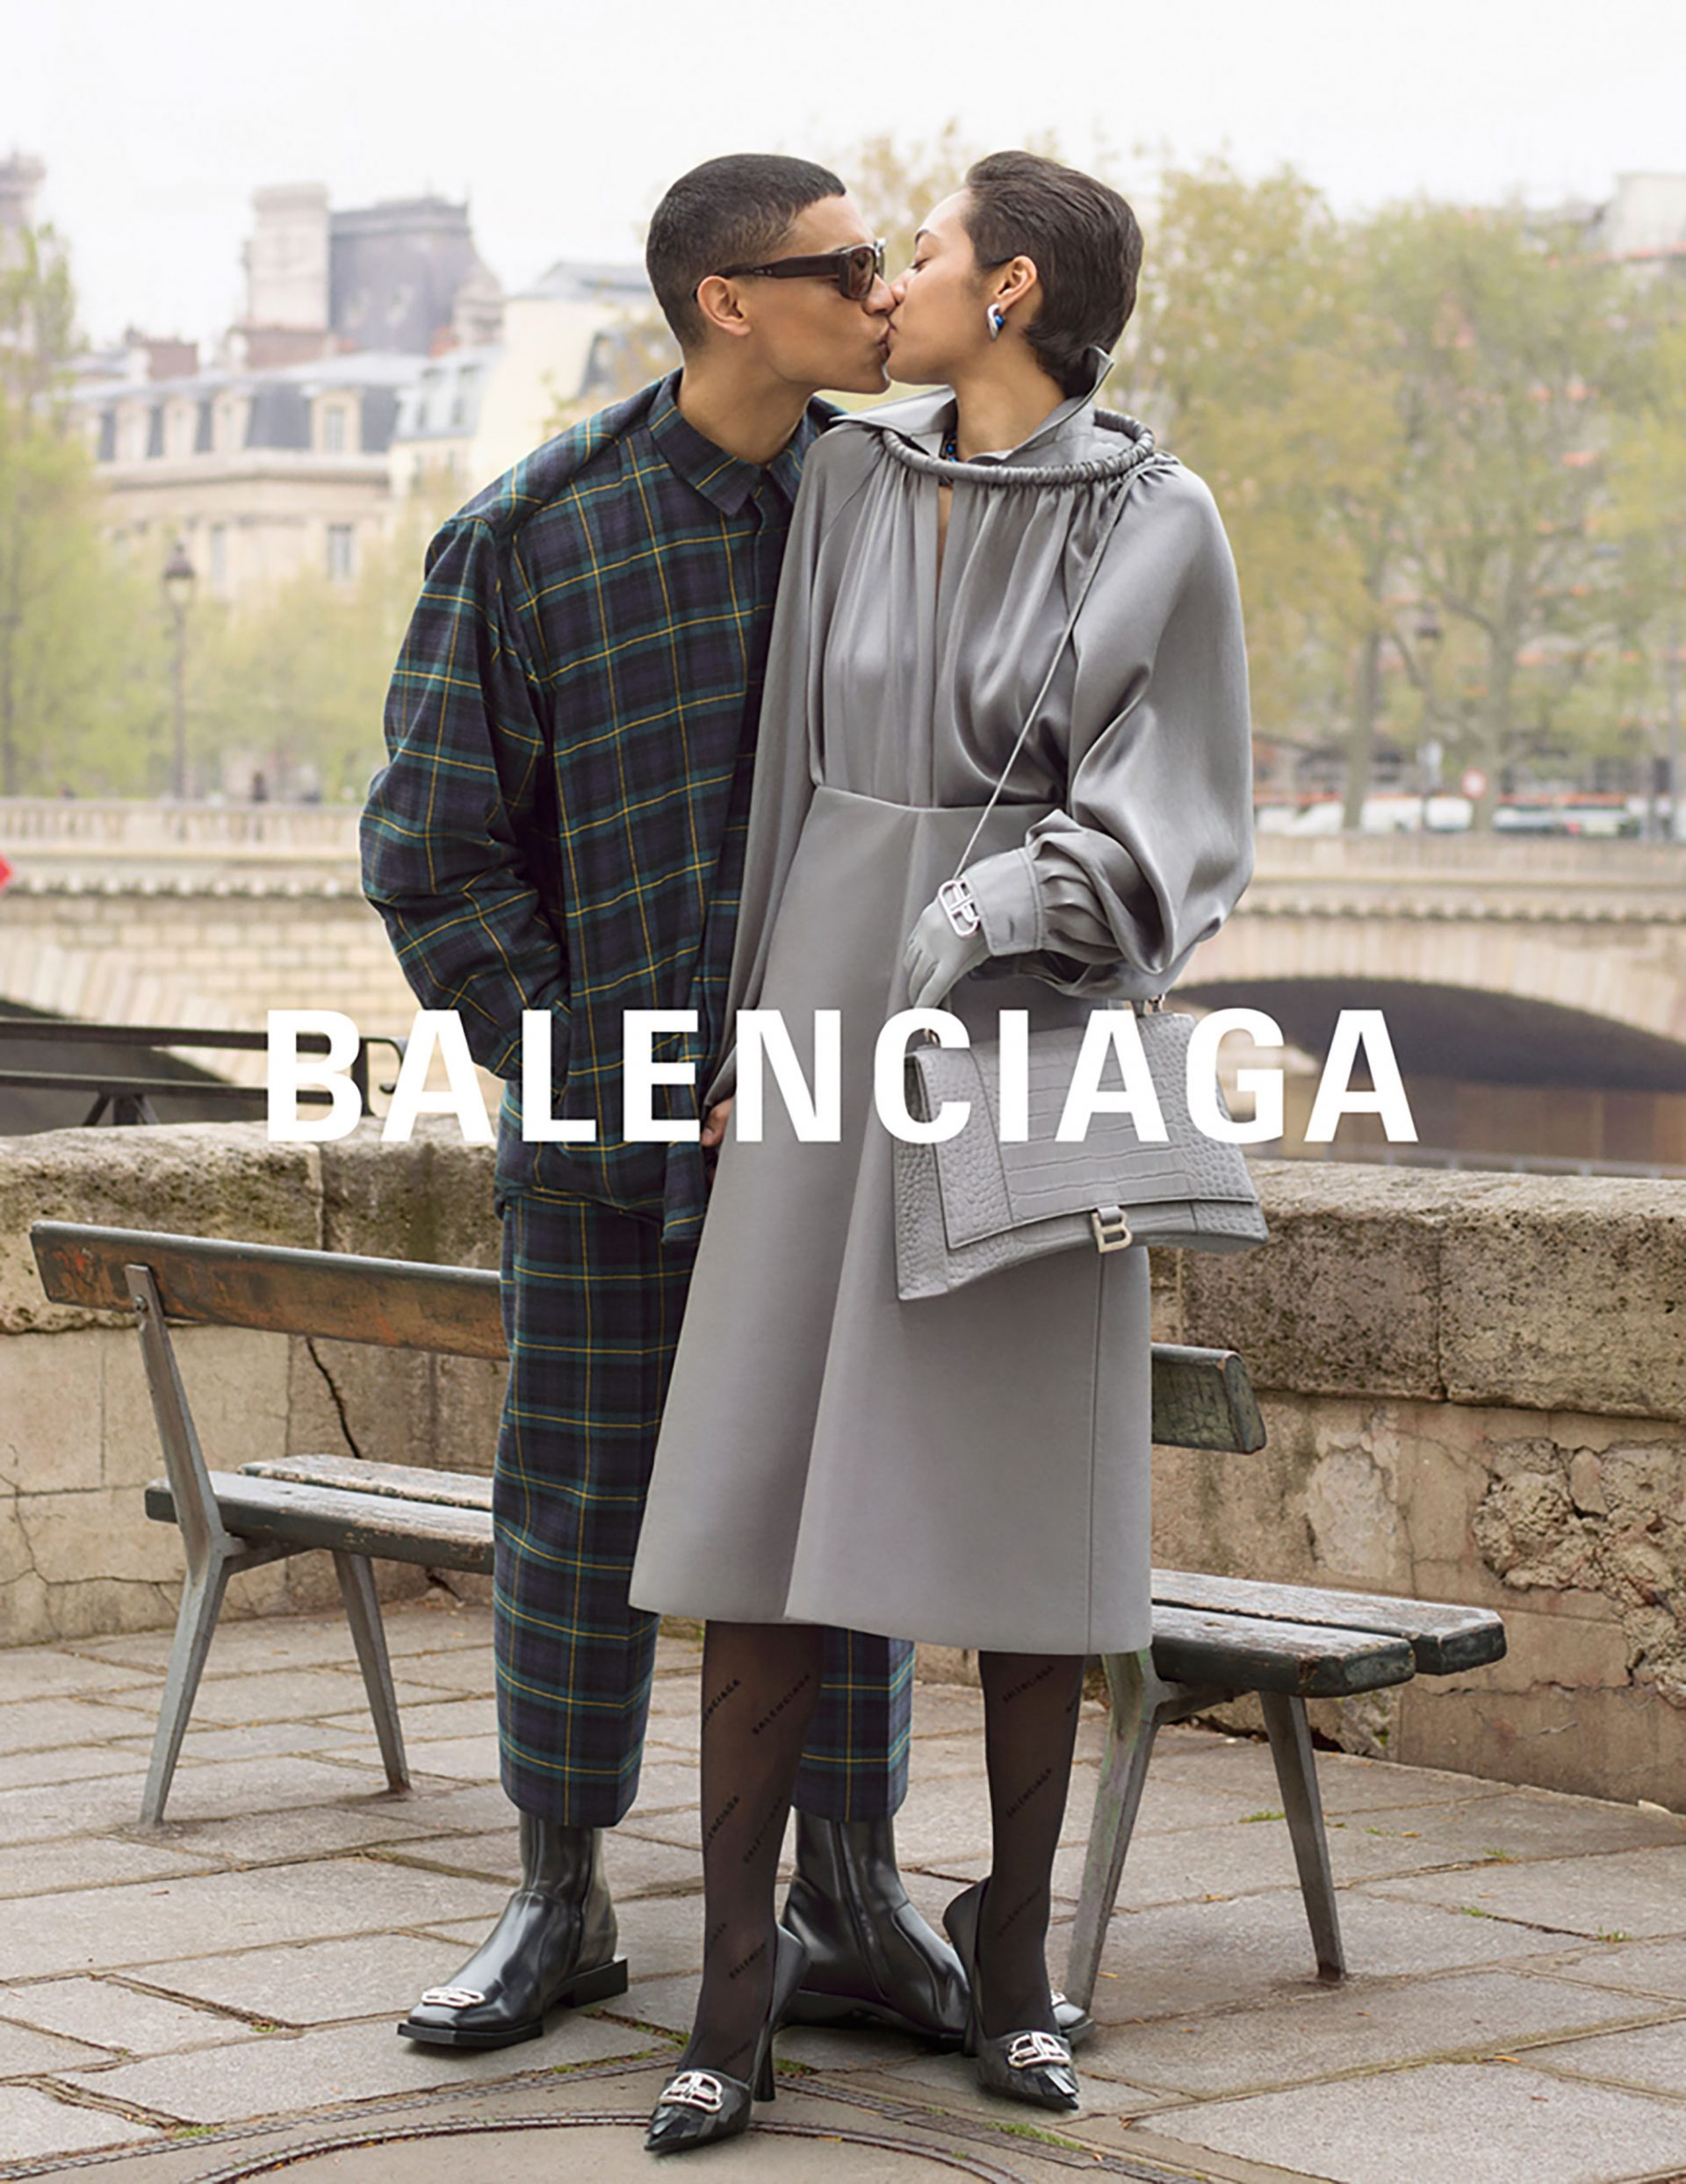 Courtesy of BALENCIAGA